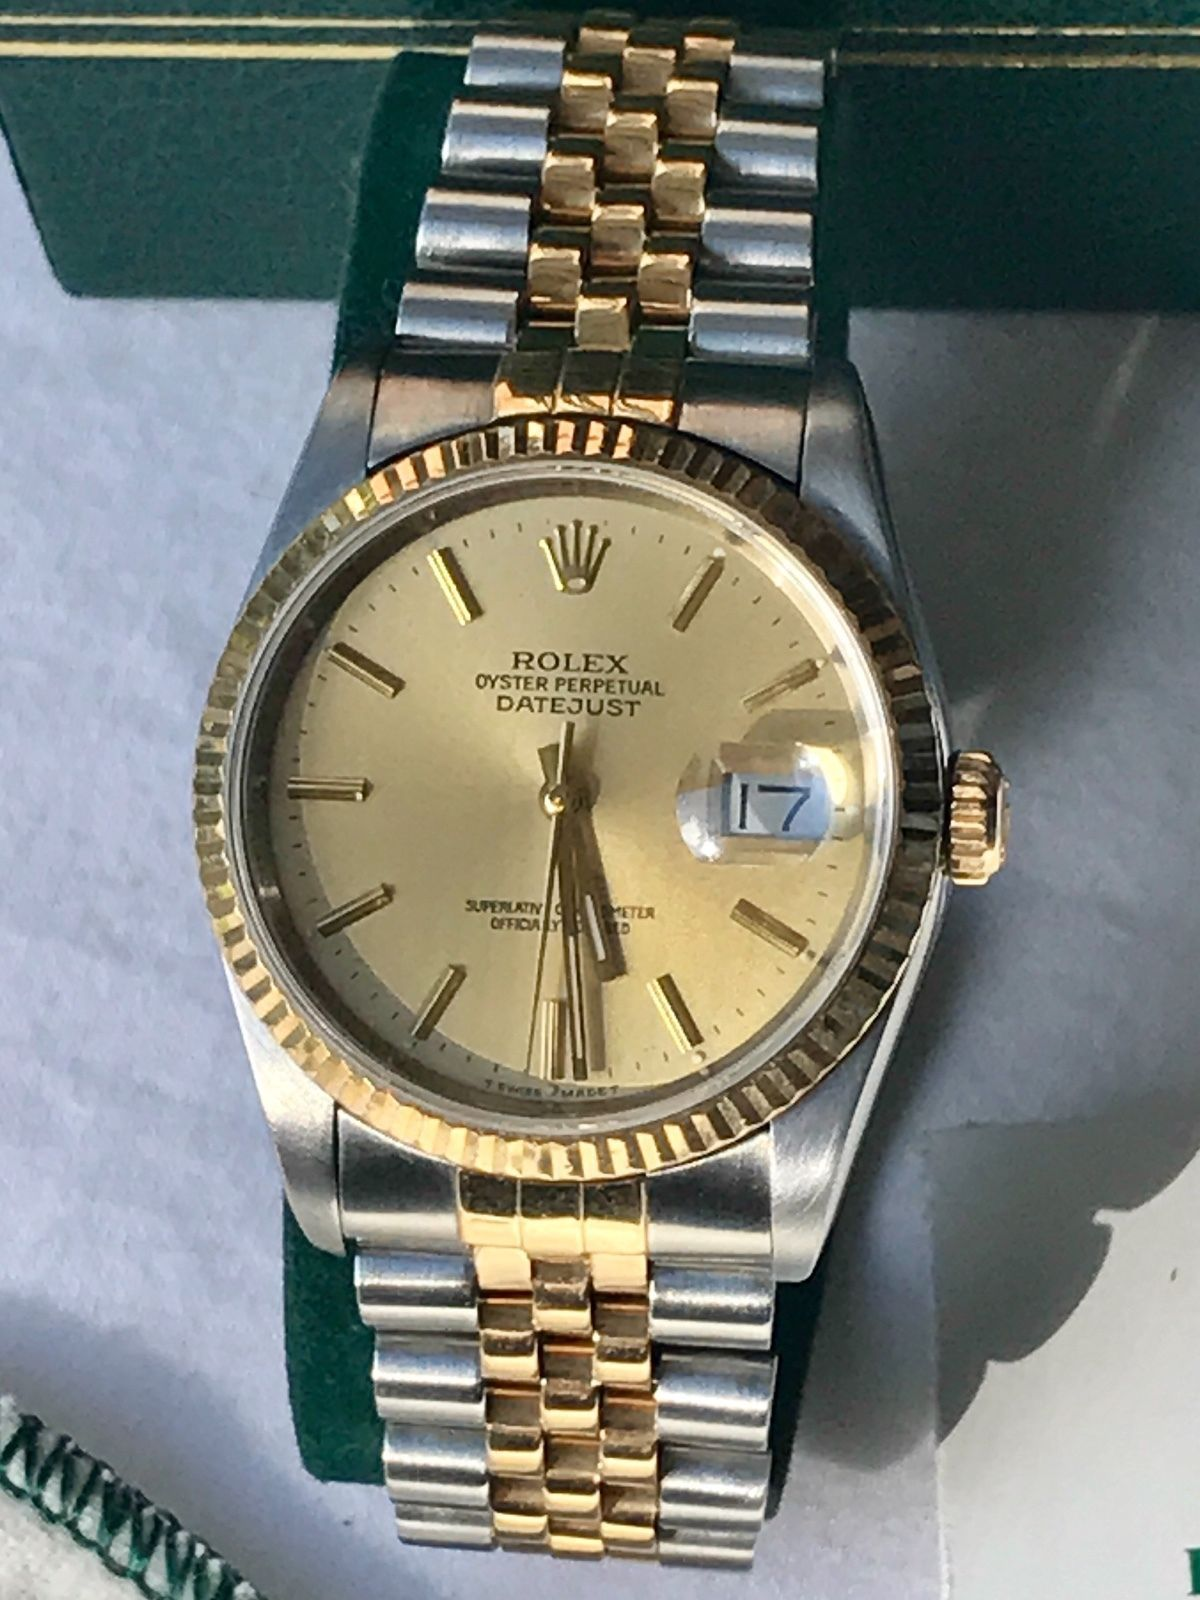 02100981965 #Forsale #Rolex Datejust 1988 Model 16233 W Full Box Set Papers Service  Receipt Books #Auction @$2,254.79